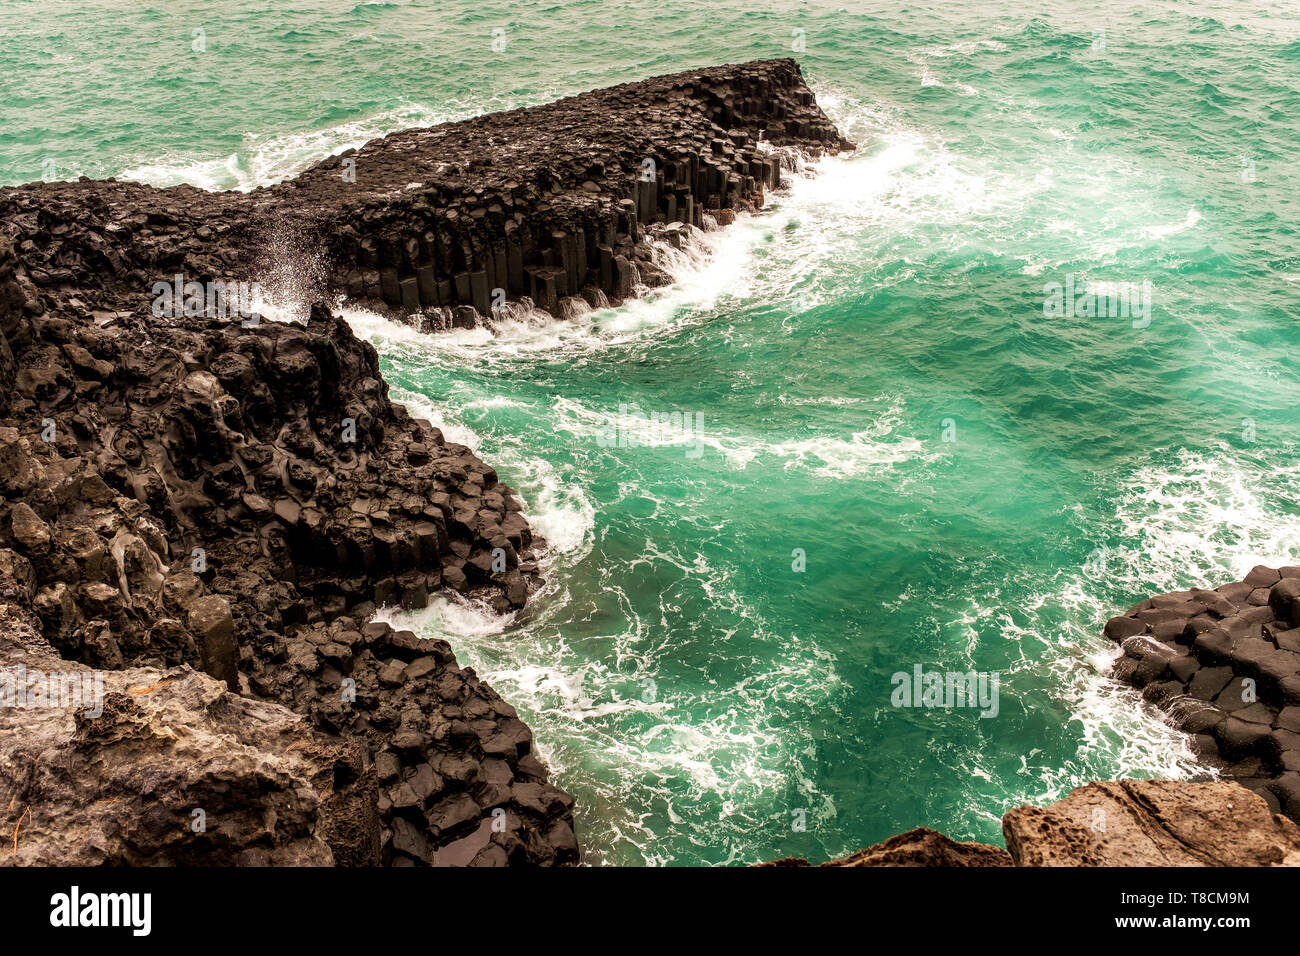 Daepo Jusangjeolli Cliff in Jeju, South Korea - Stock Image